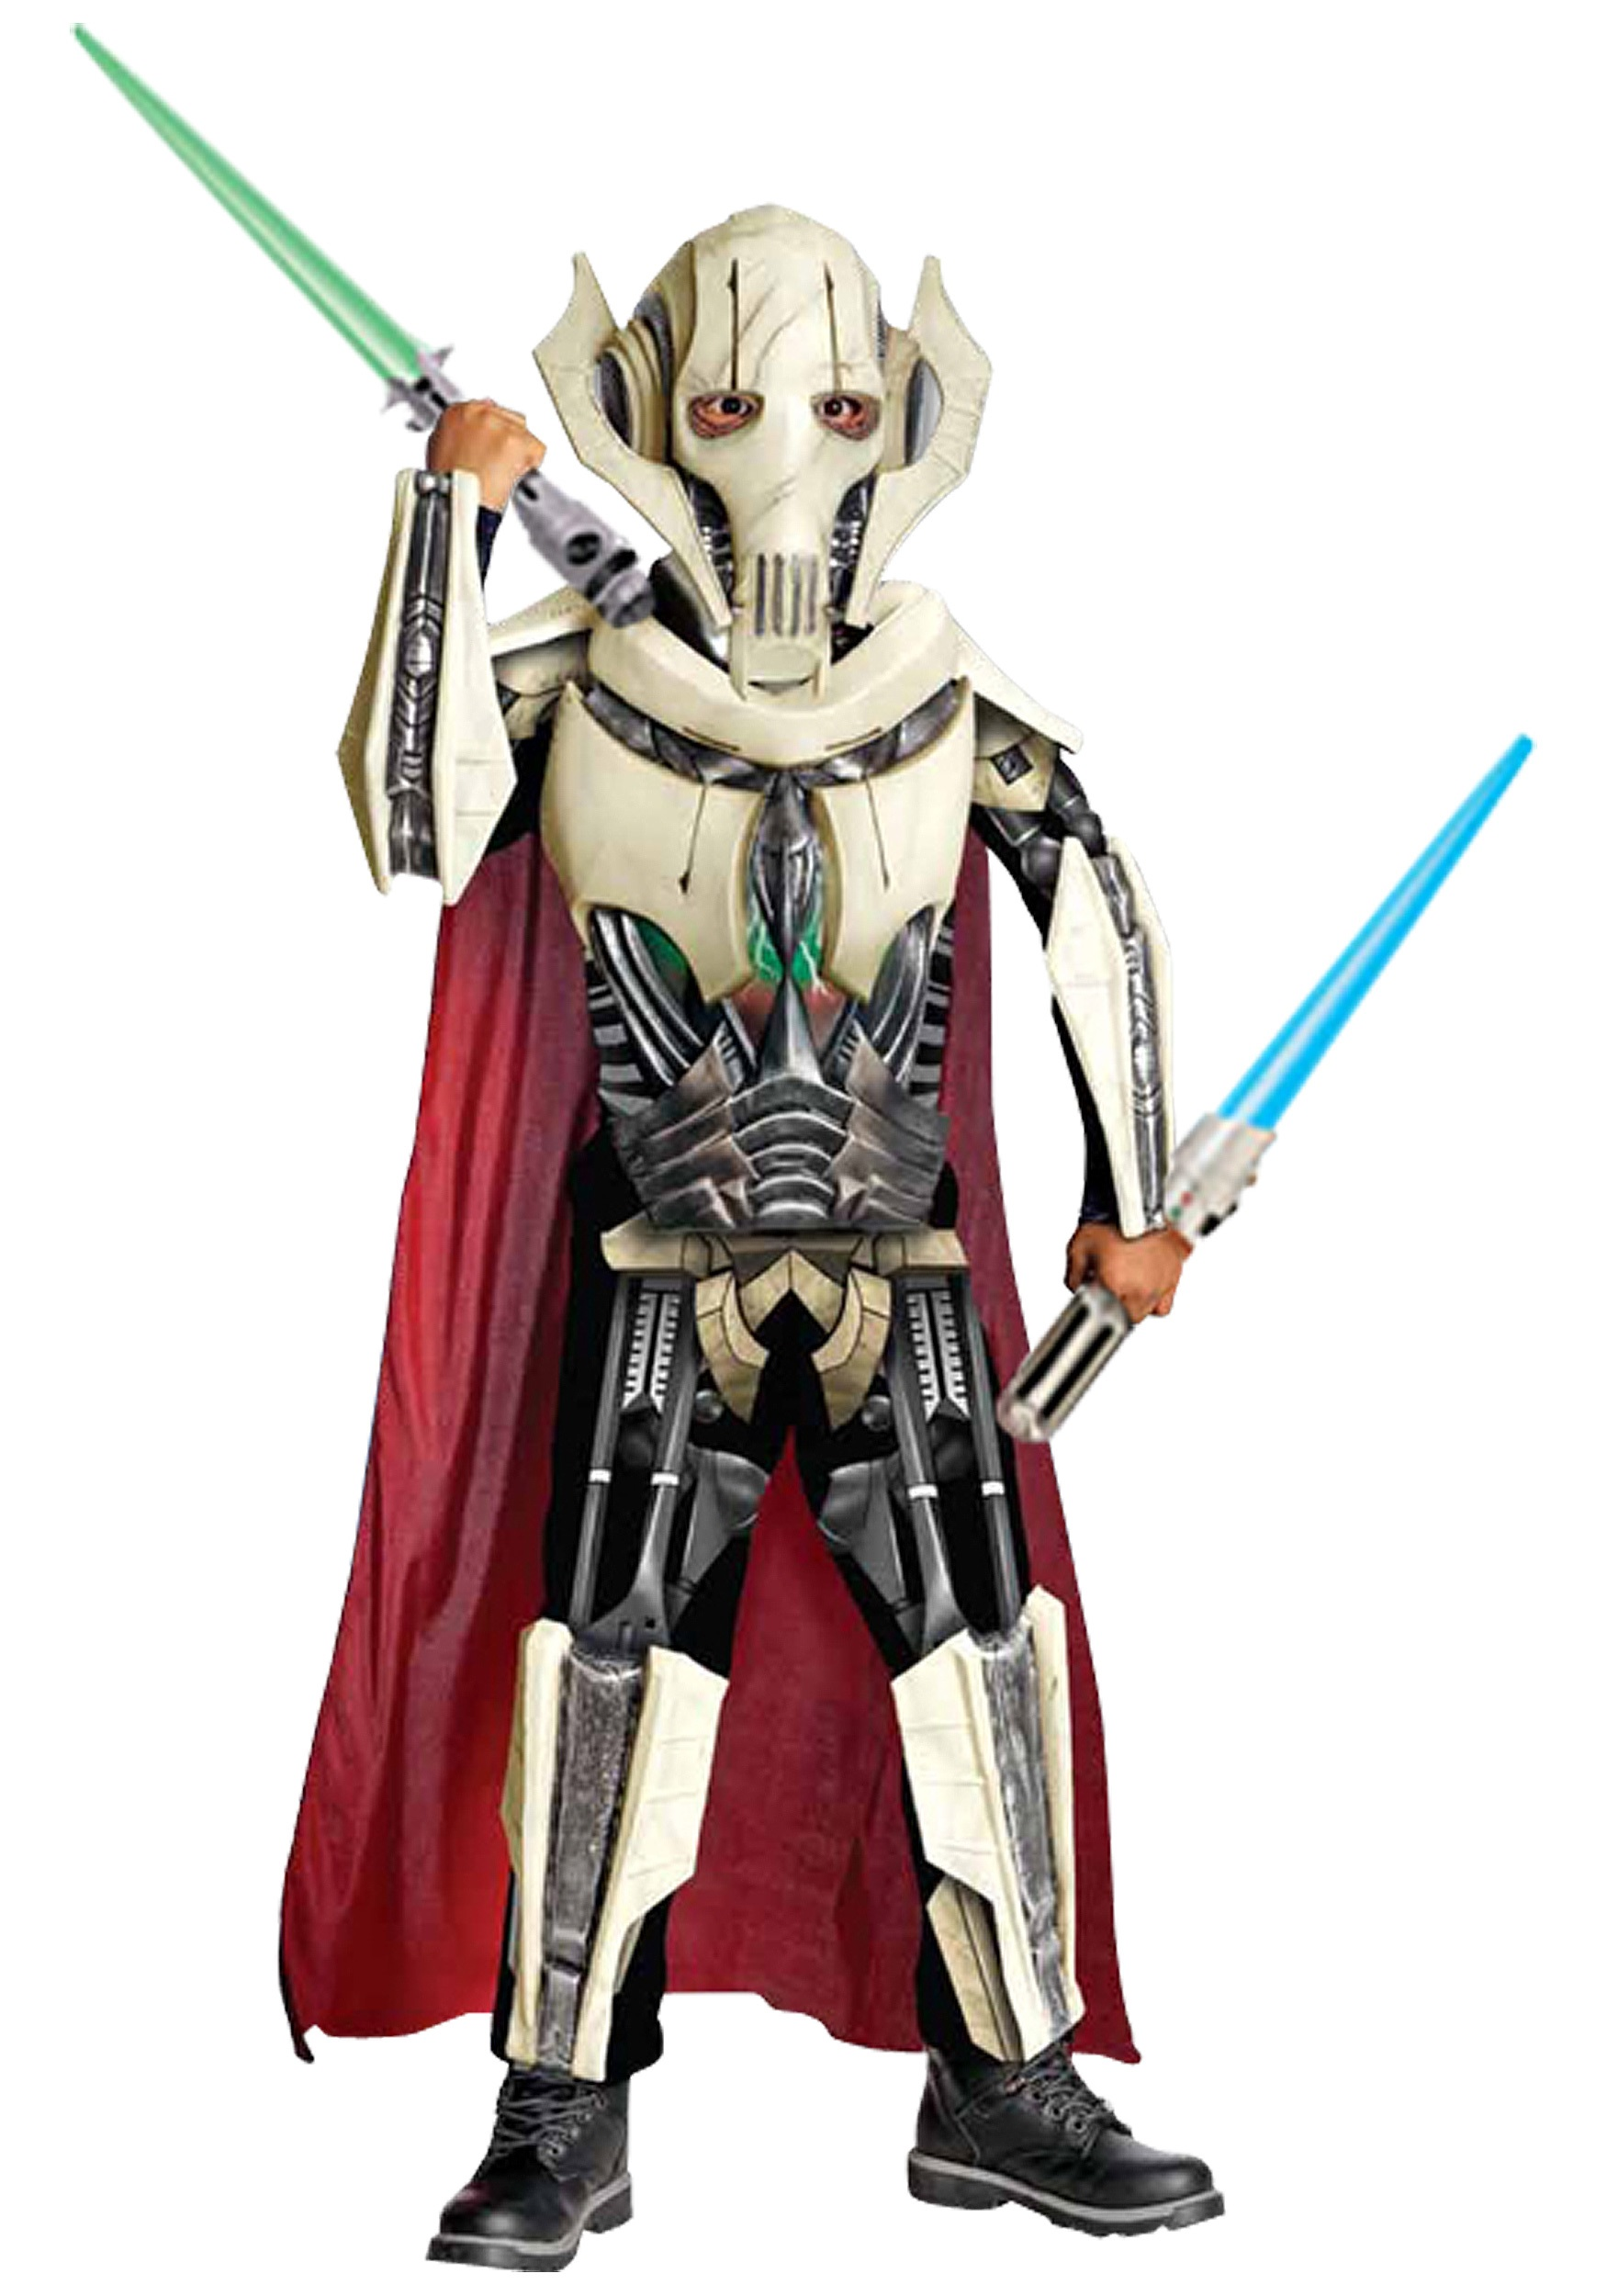 Child General Grievous Costume: www.halloweencostumes.com/child-general-grievous-costume.html